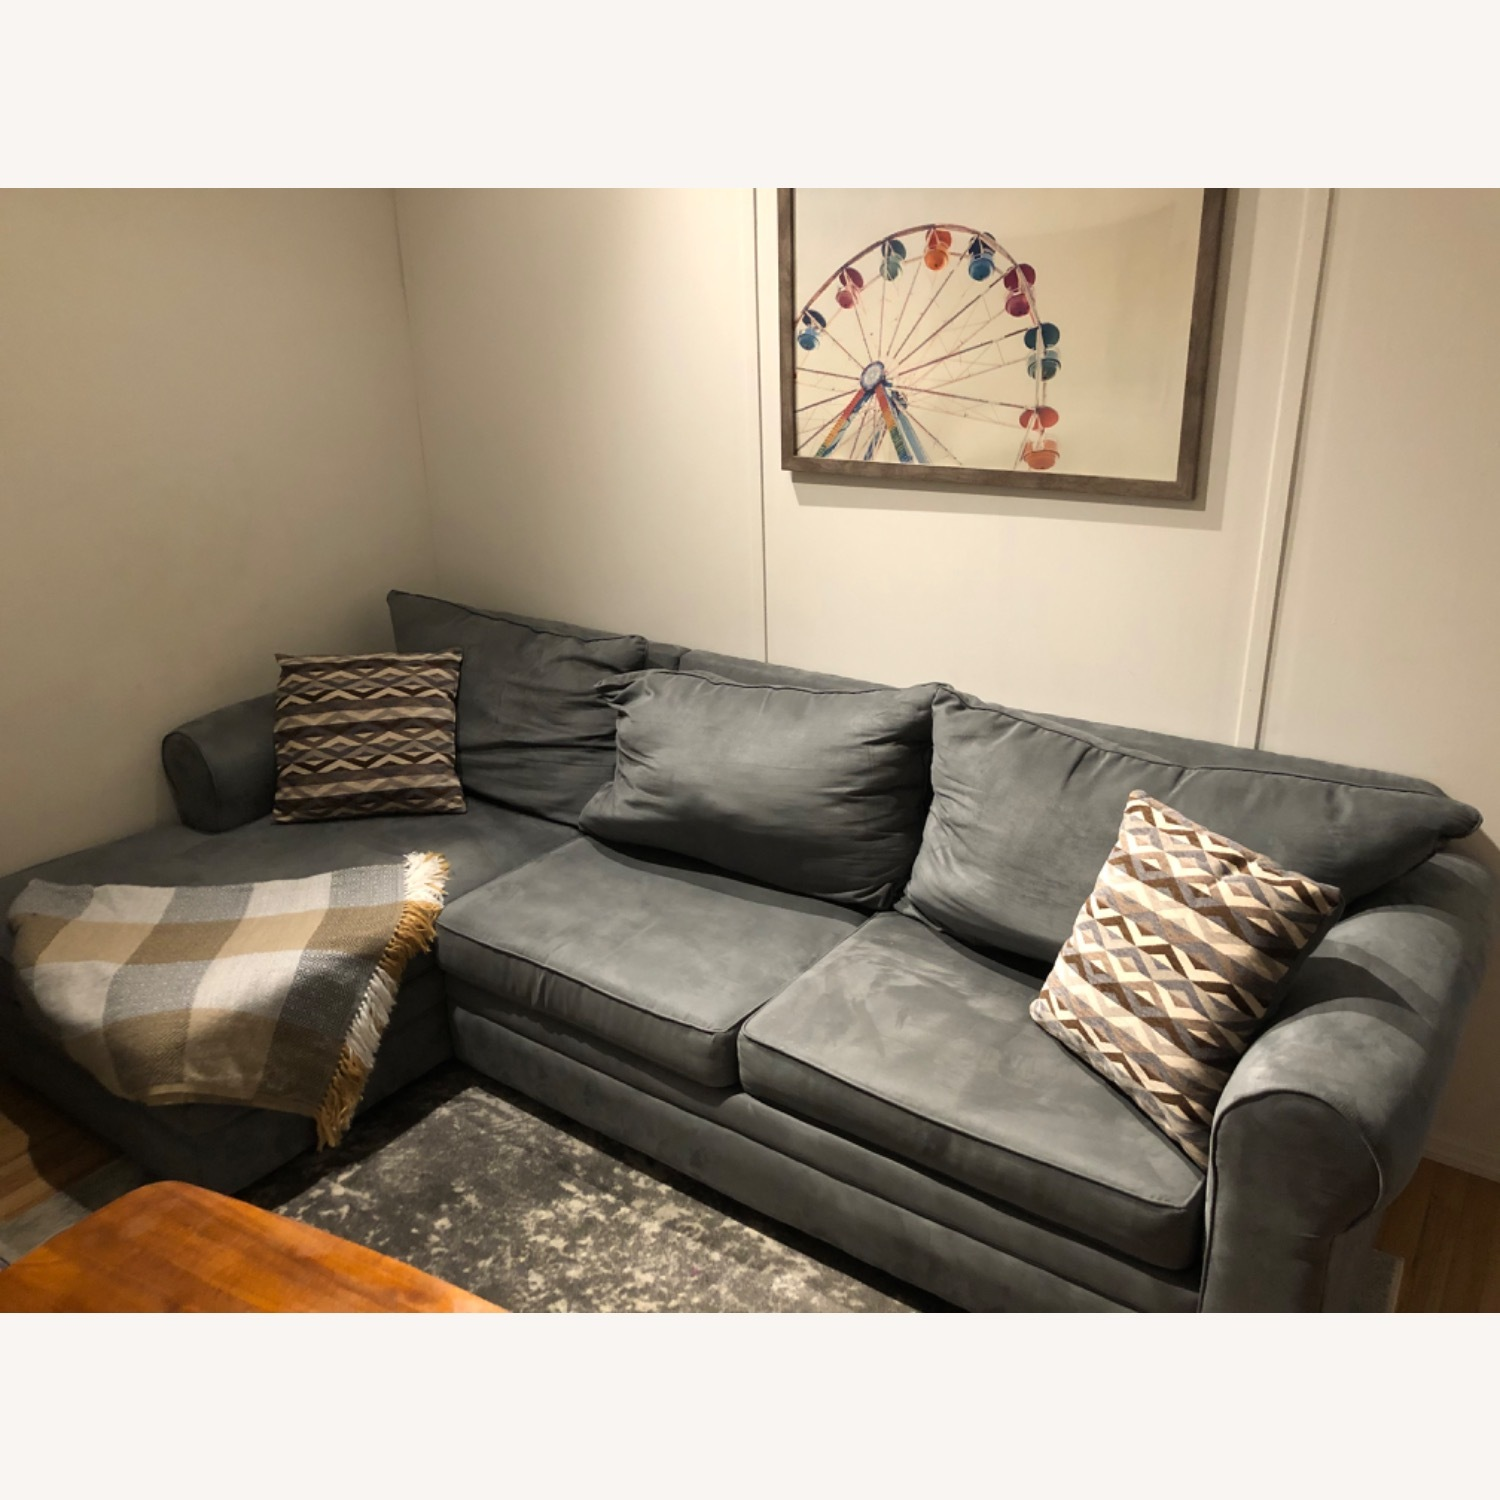 Bob's Discount Ash Grey Sectional Couch - image-1